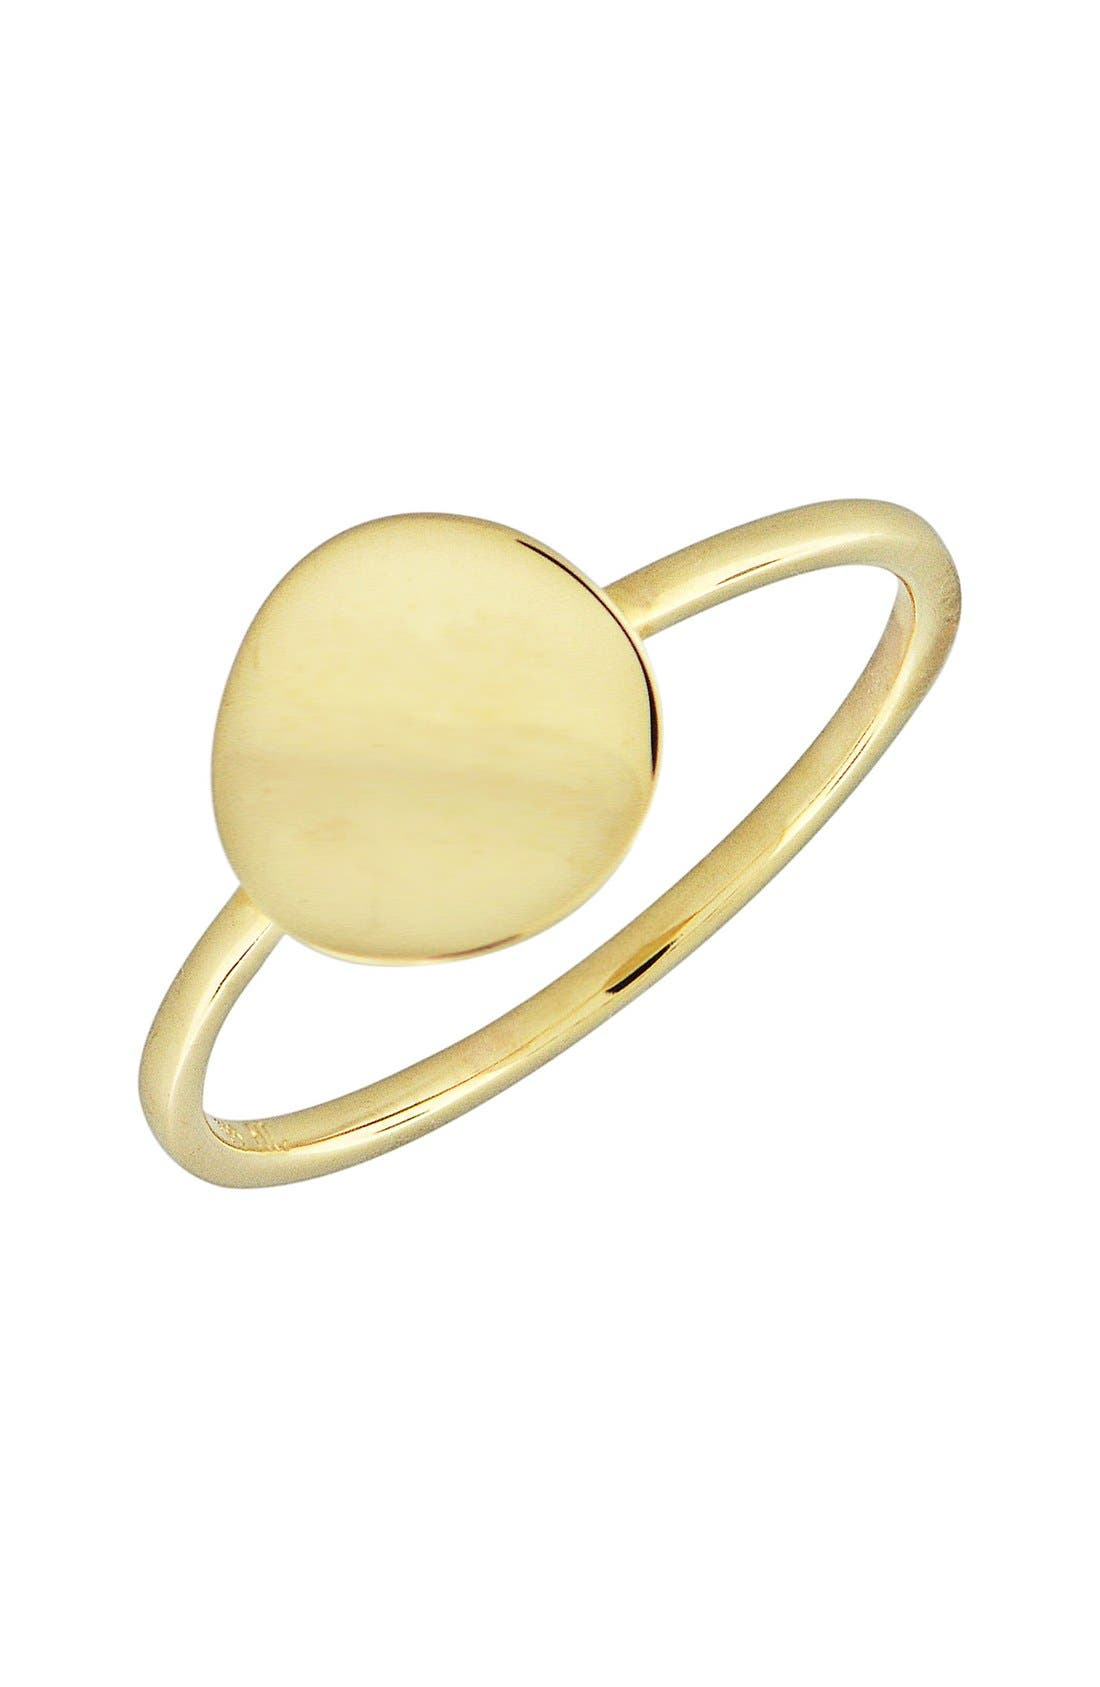 14k Gold Concave Disc Ring,                         Main,                         color, Yellow Gold